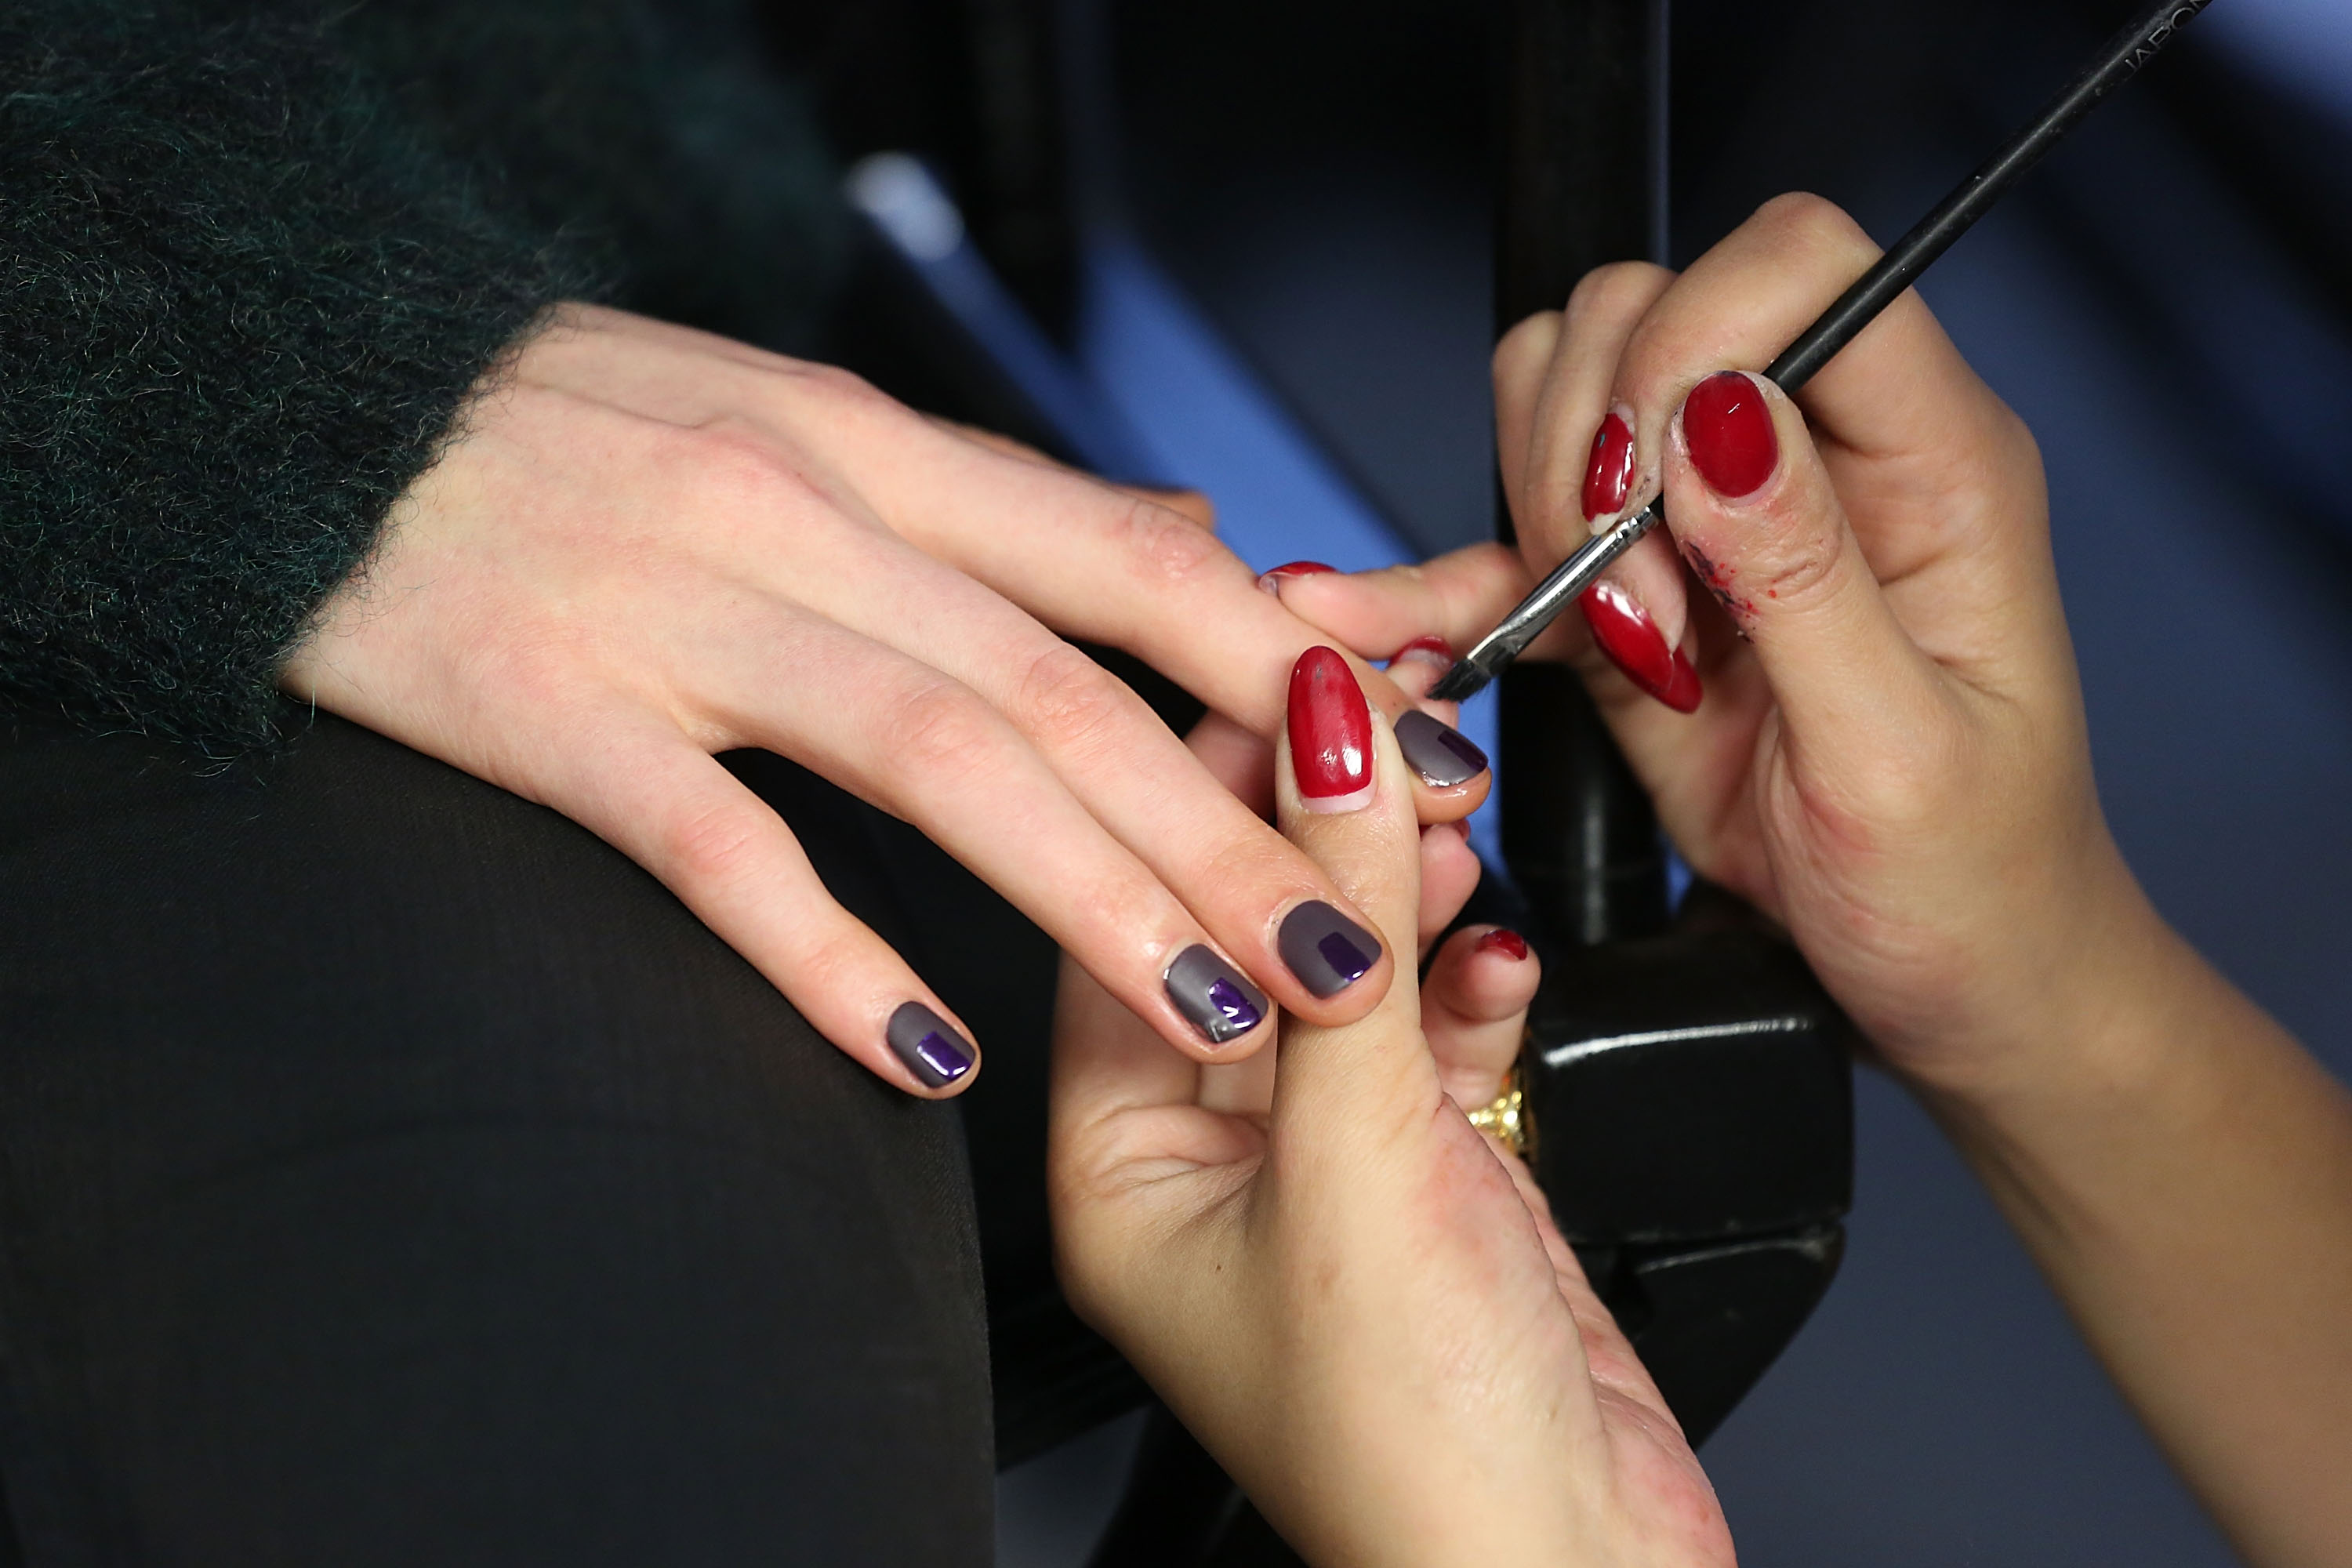 13 Things You Should Never Do To Your Nails If You Want Those Talons ...